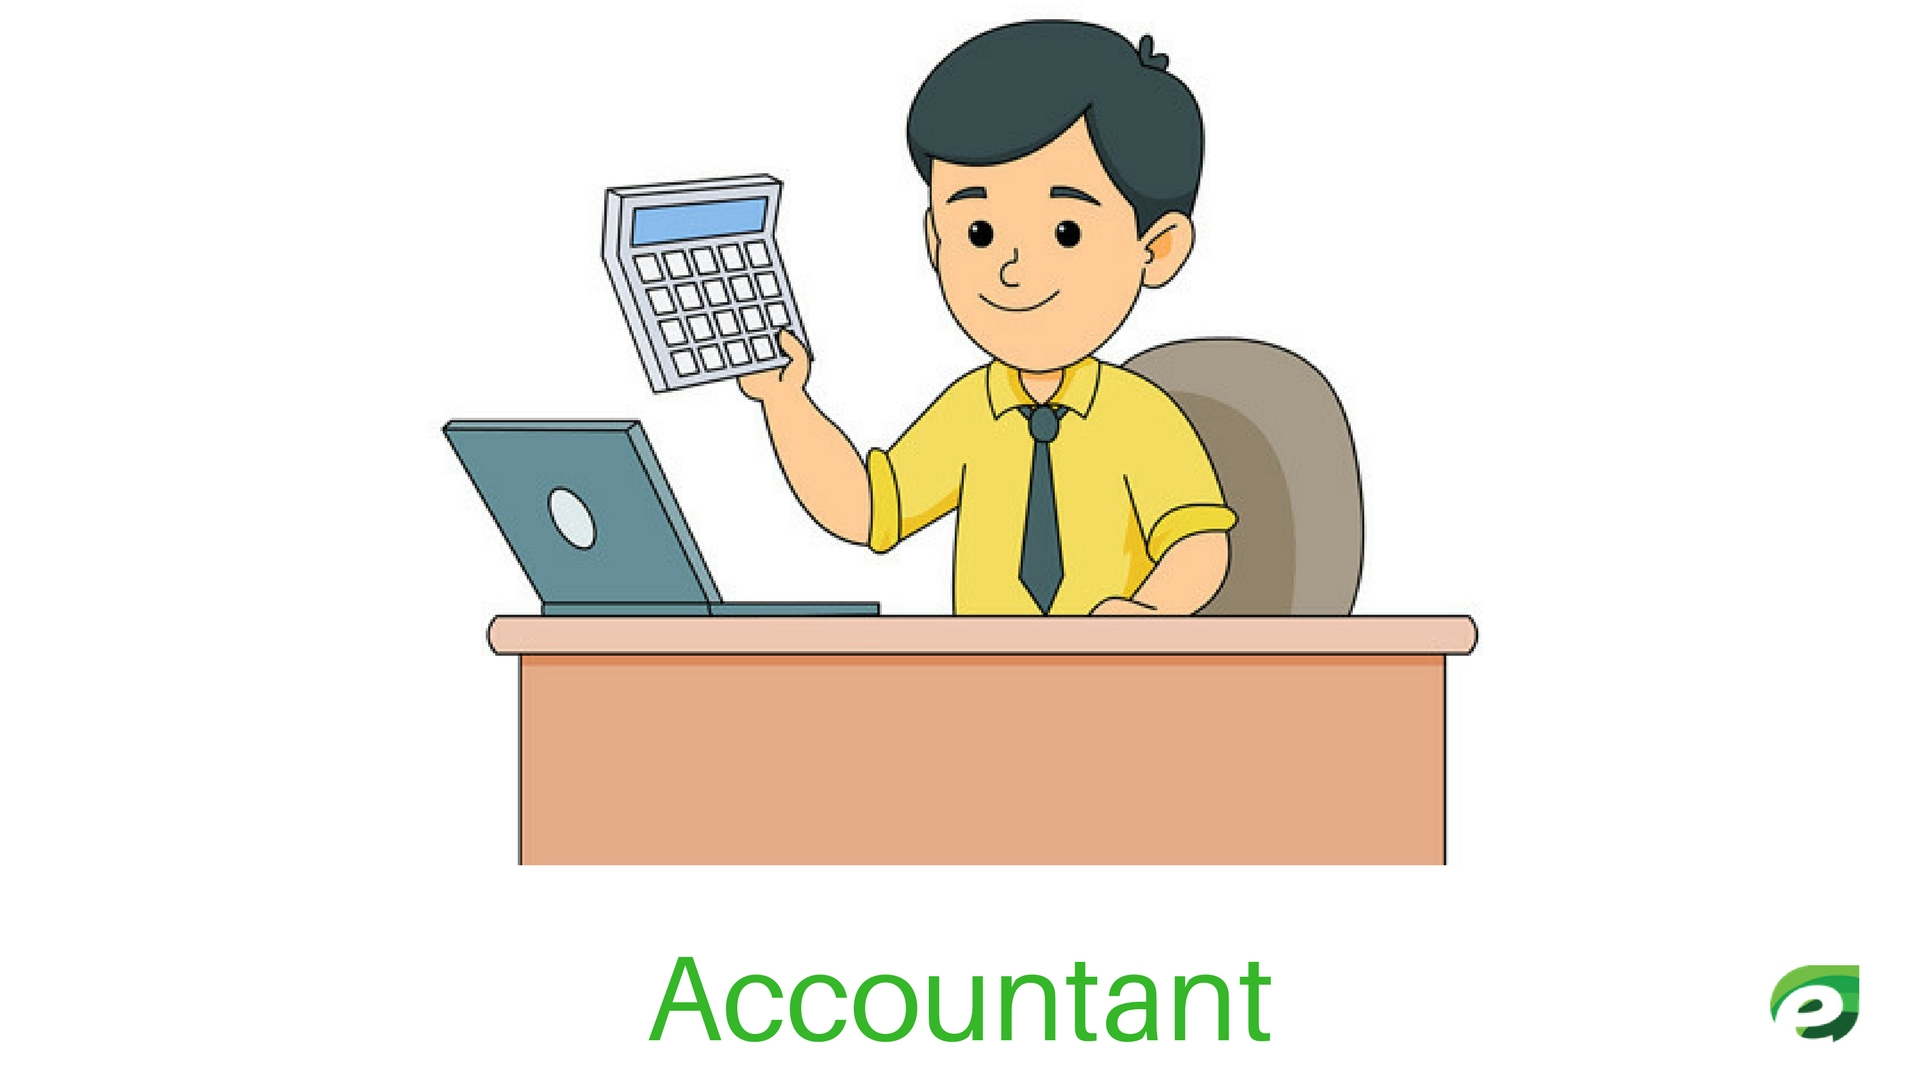 Accountant - SEO Team